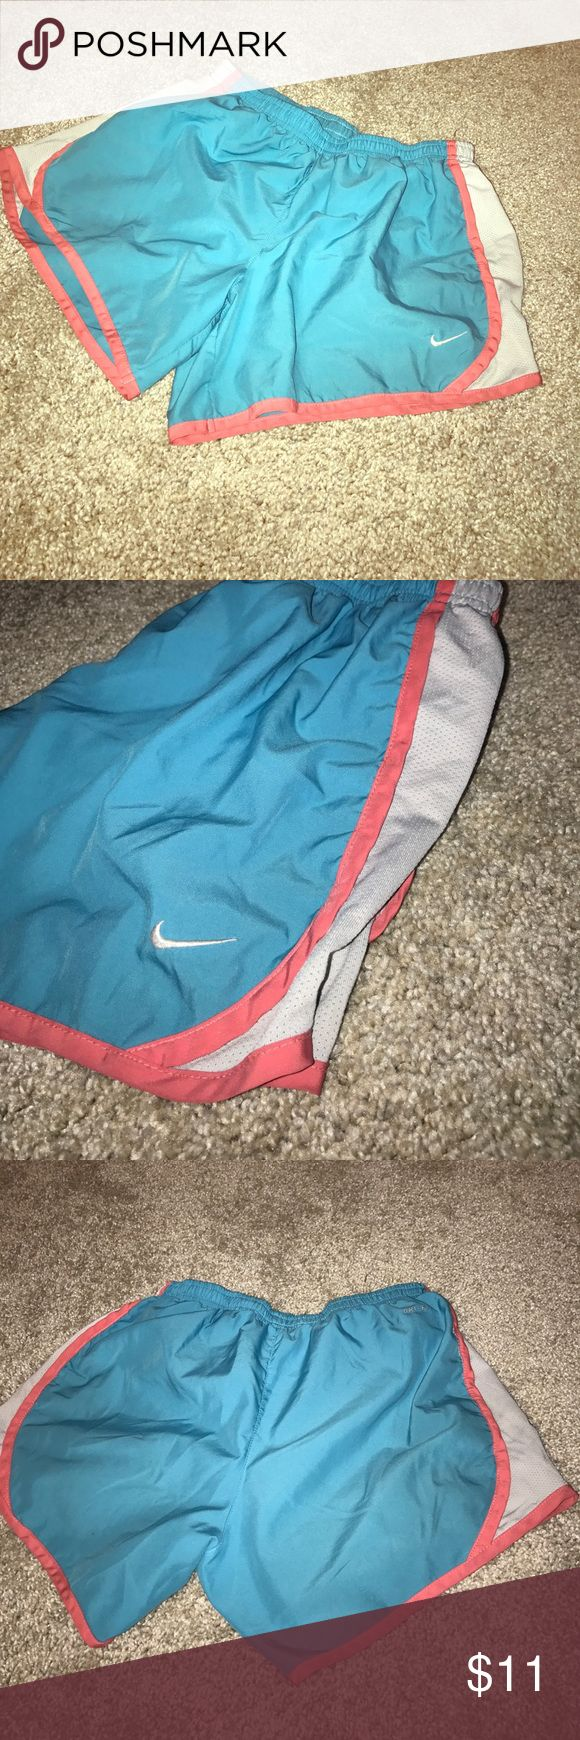 Girl's Nike running shorts Girl's XL Nike running shorts. Teal blue and bubblegum pink. Inside string has been cut out. Nike Bottoms Shorts